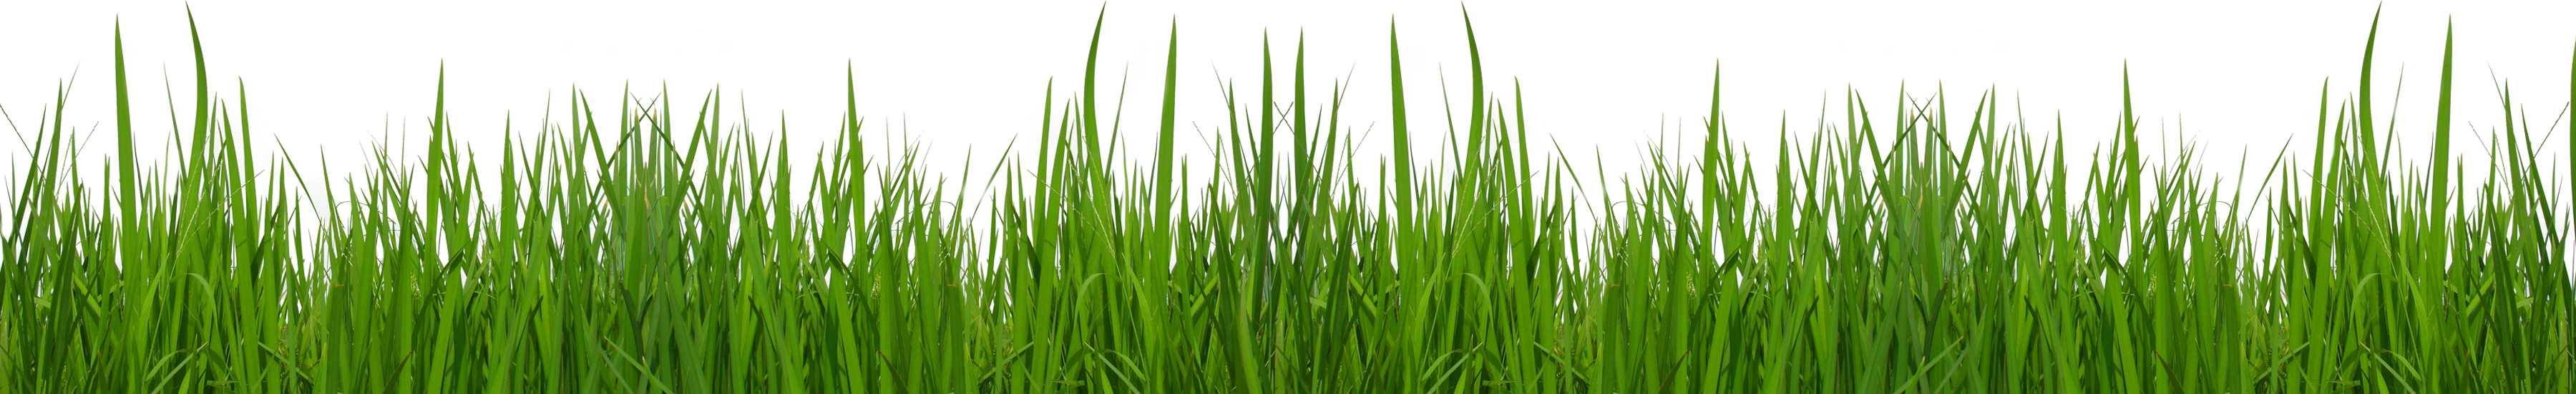 Grass clipart #4, Download drawings